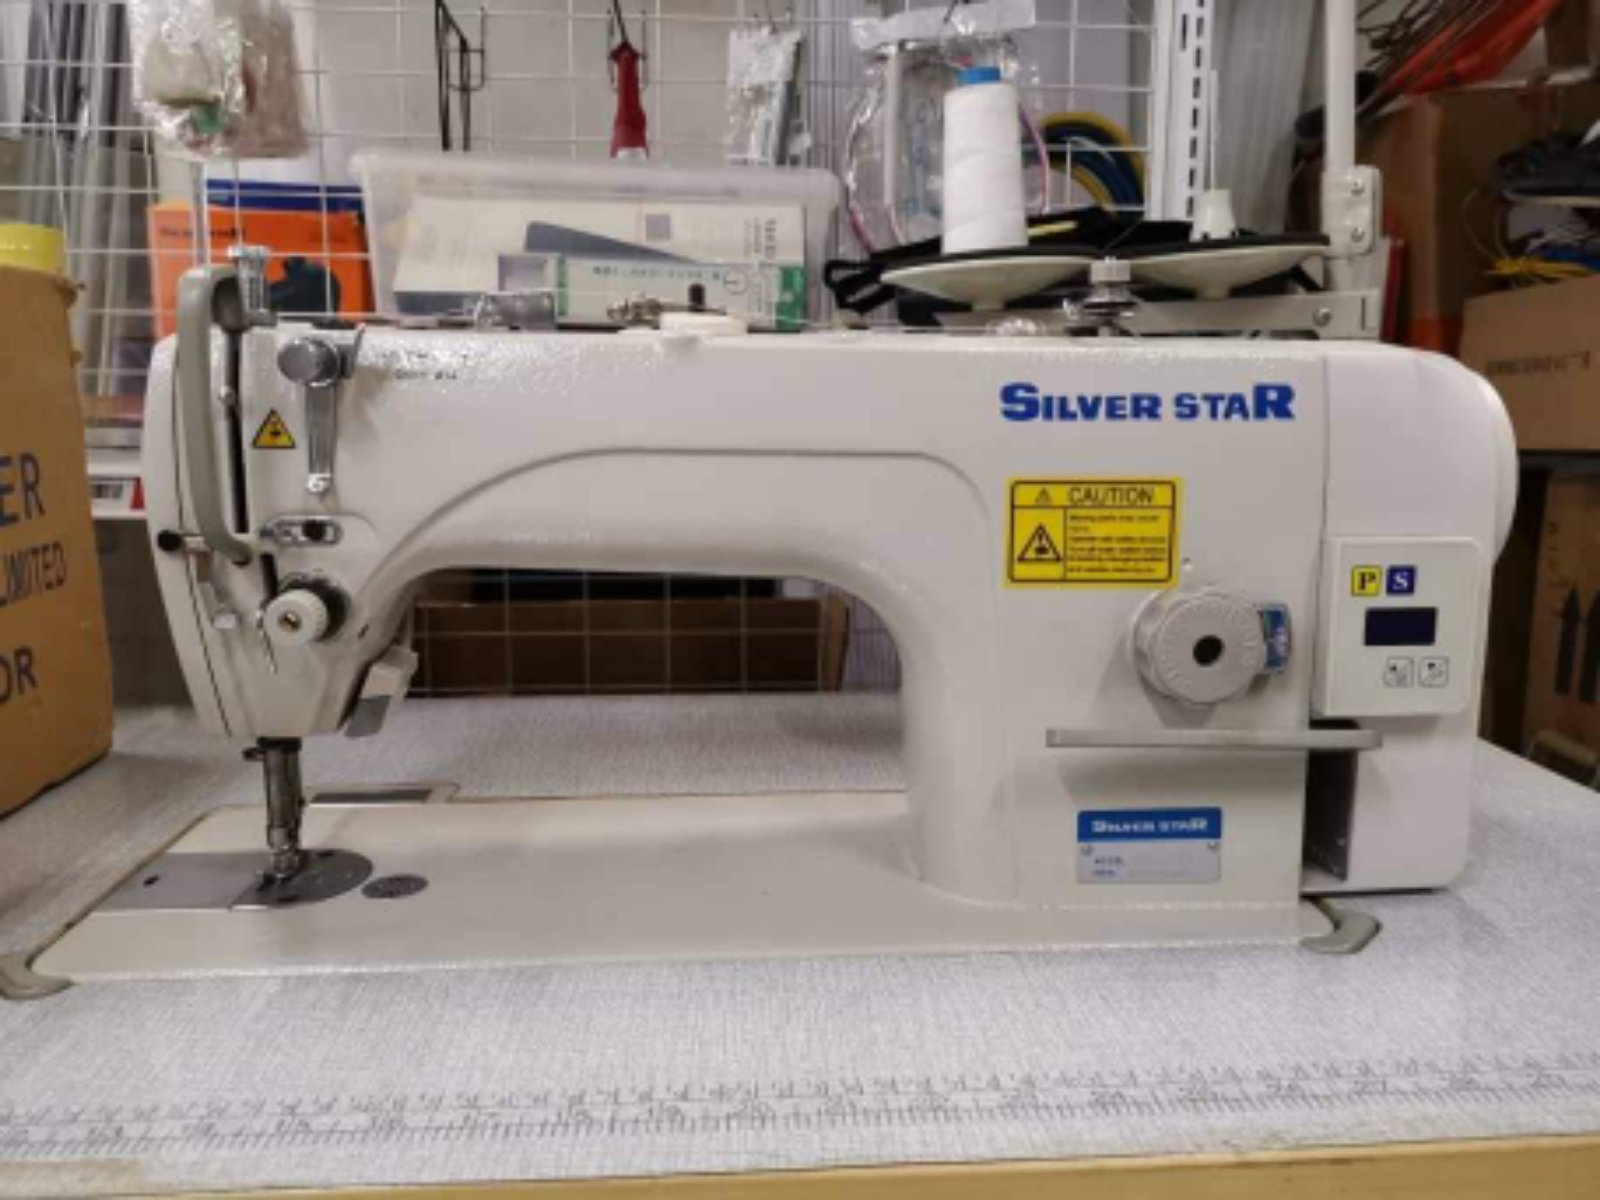 Silverstar Hi Speed Sewing machine